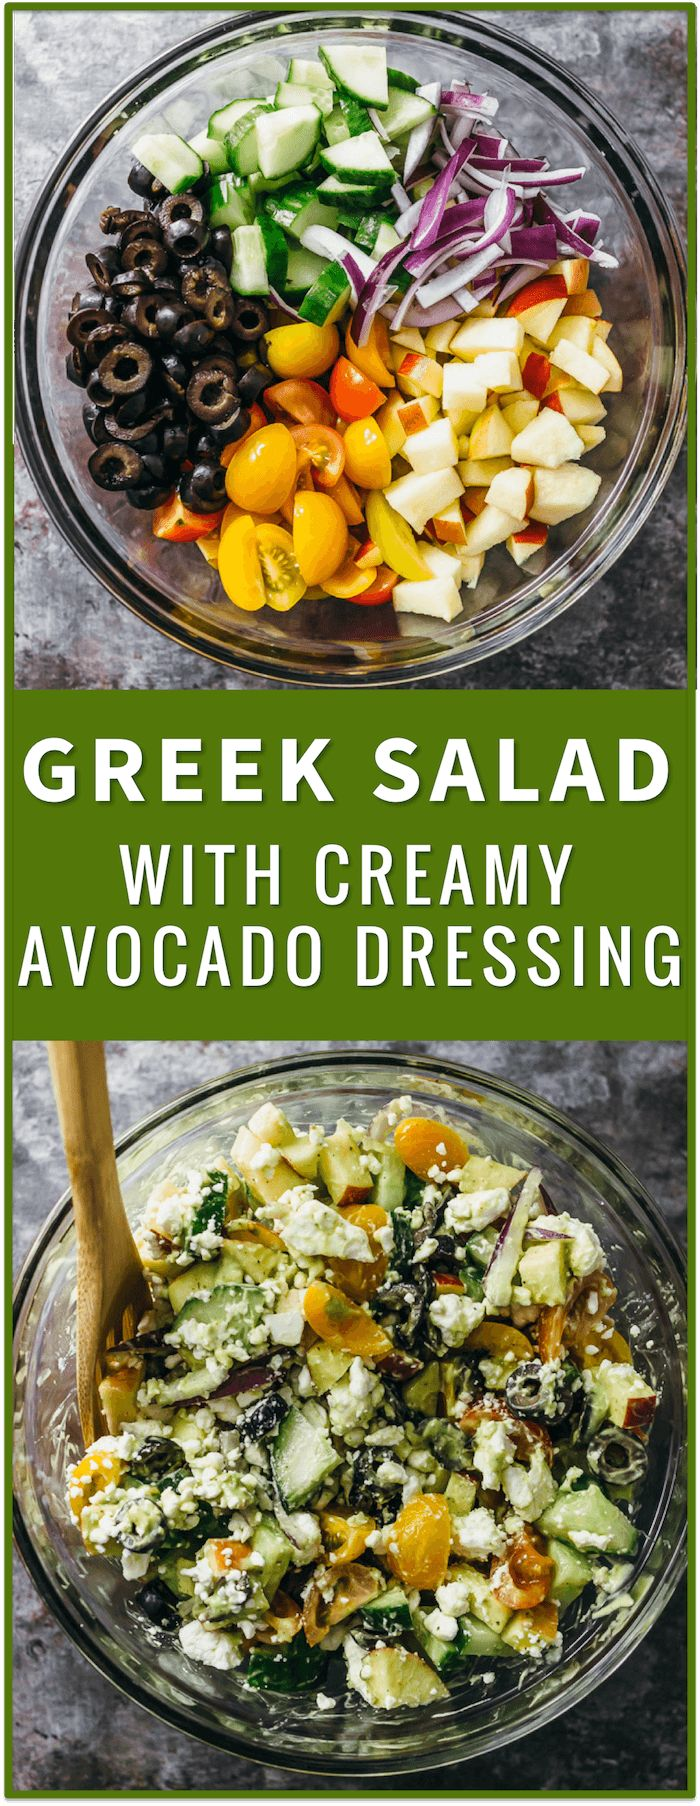 Greek salad with creamy avocado dressing, greek salad dressing recipe, traditional greek salad, greek pasta salad recipe, best greek salad recipe with chicken, easy greek salad recipe, chopped greek salad, healthy, ensalada griega greek salad, easy, authentic, pasta, cucumber via @savory_tooth